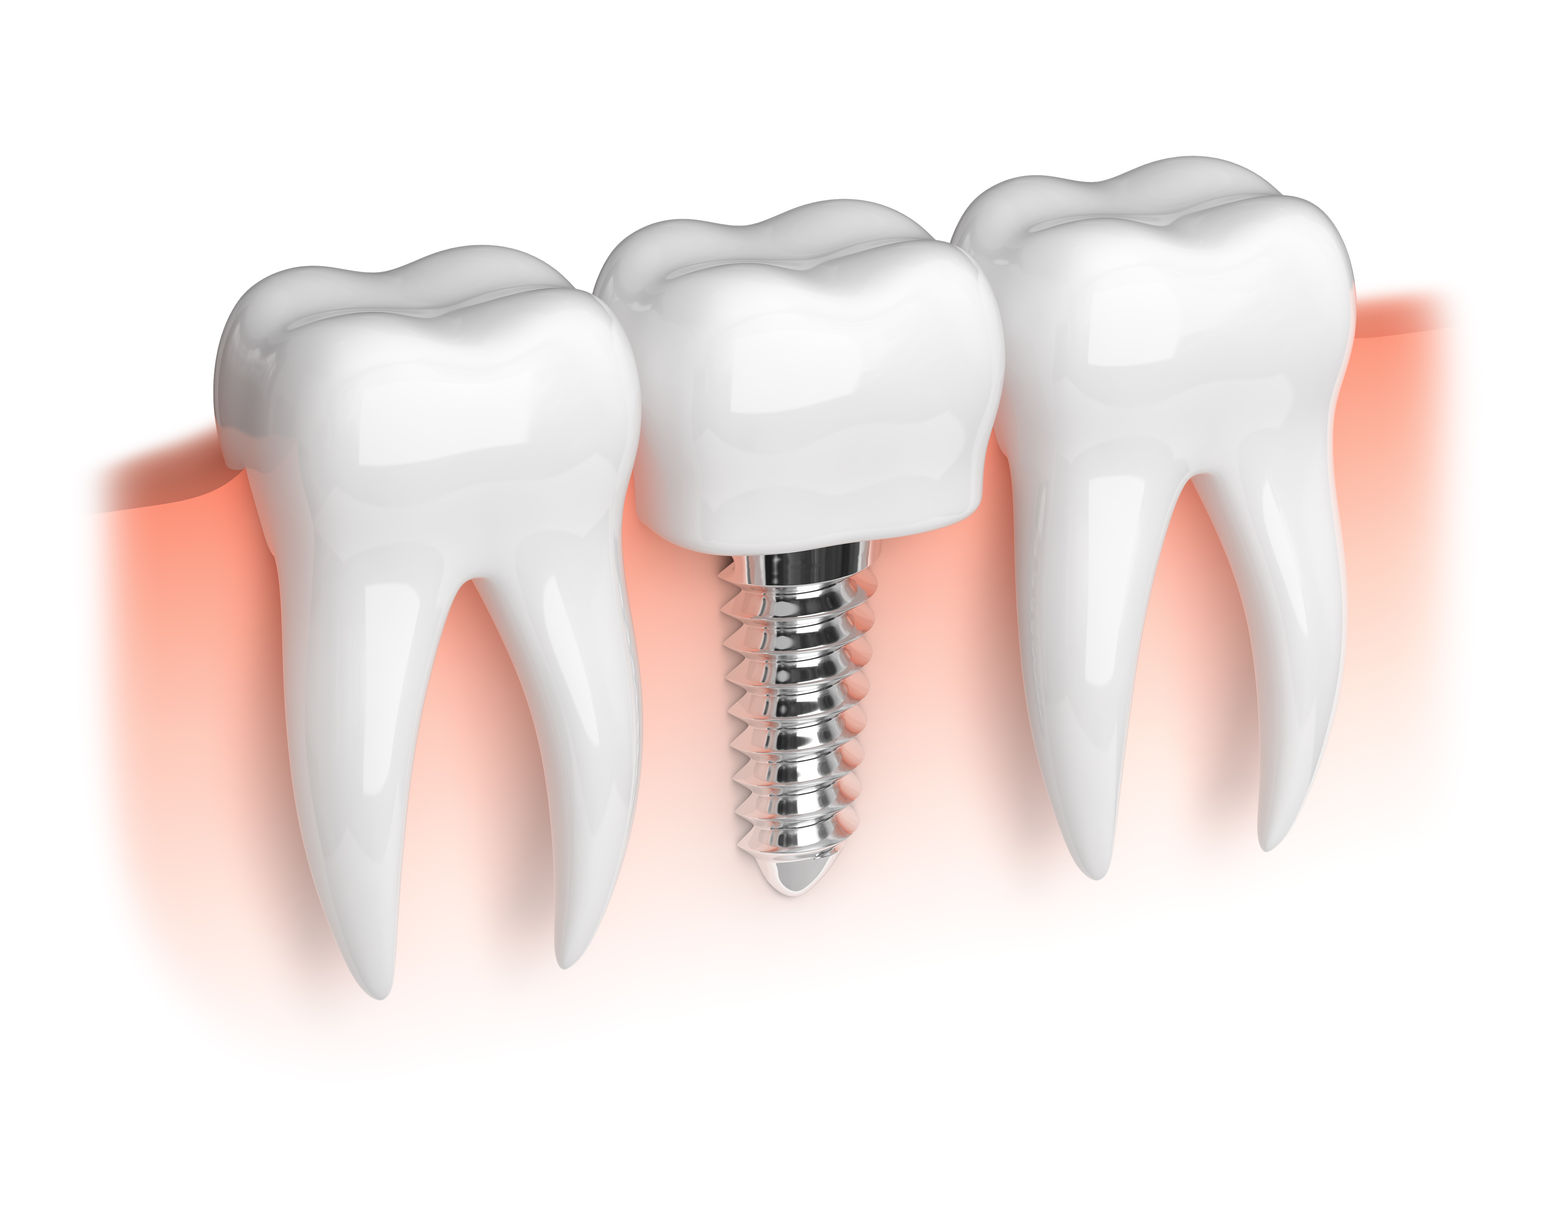 34380457 - model of white teeth and dental implant